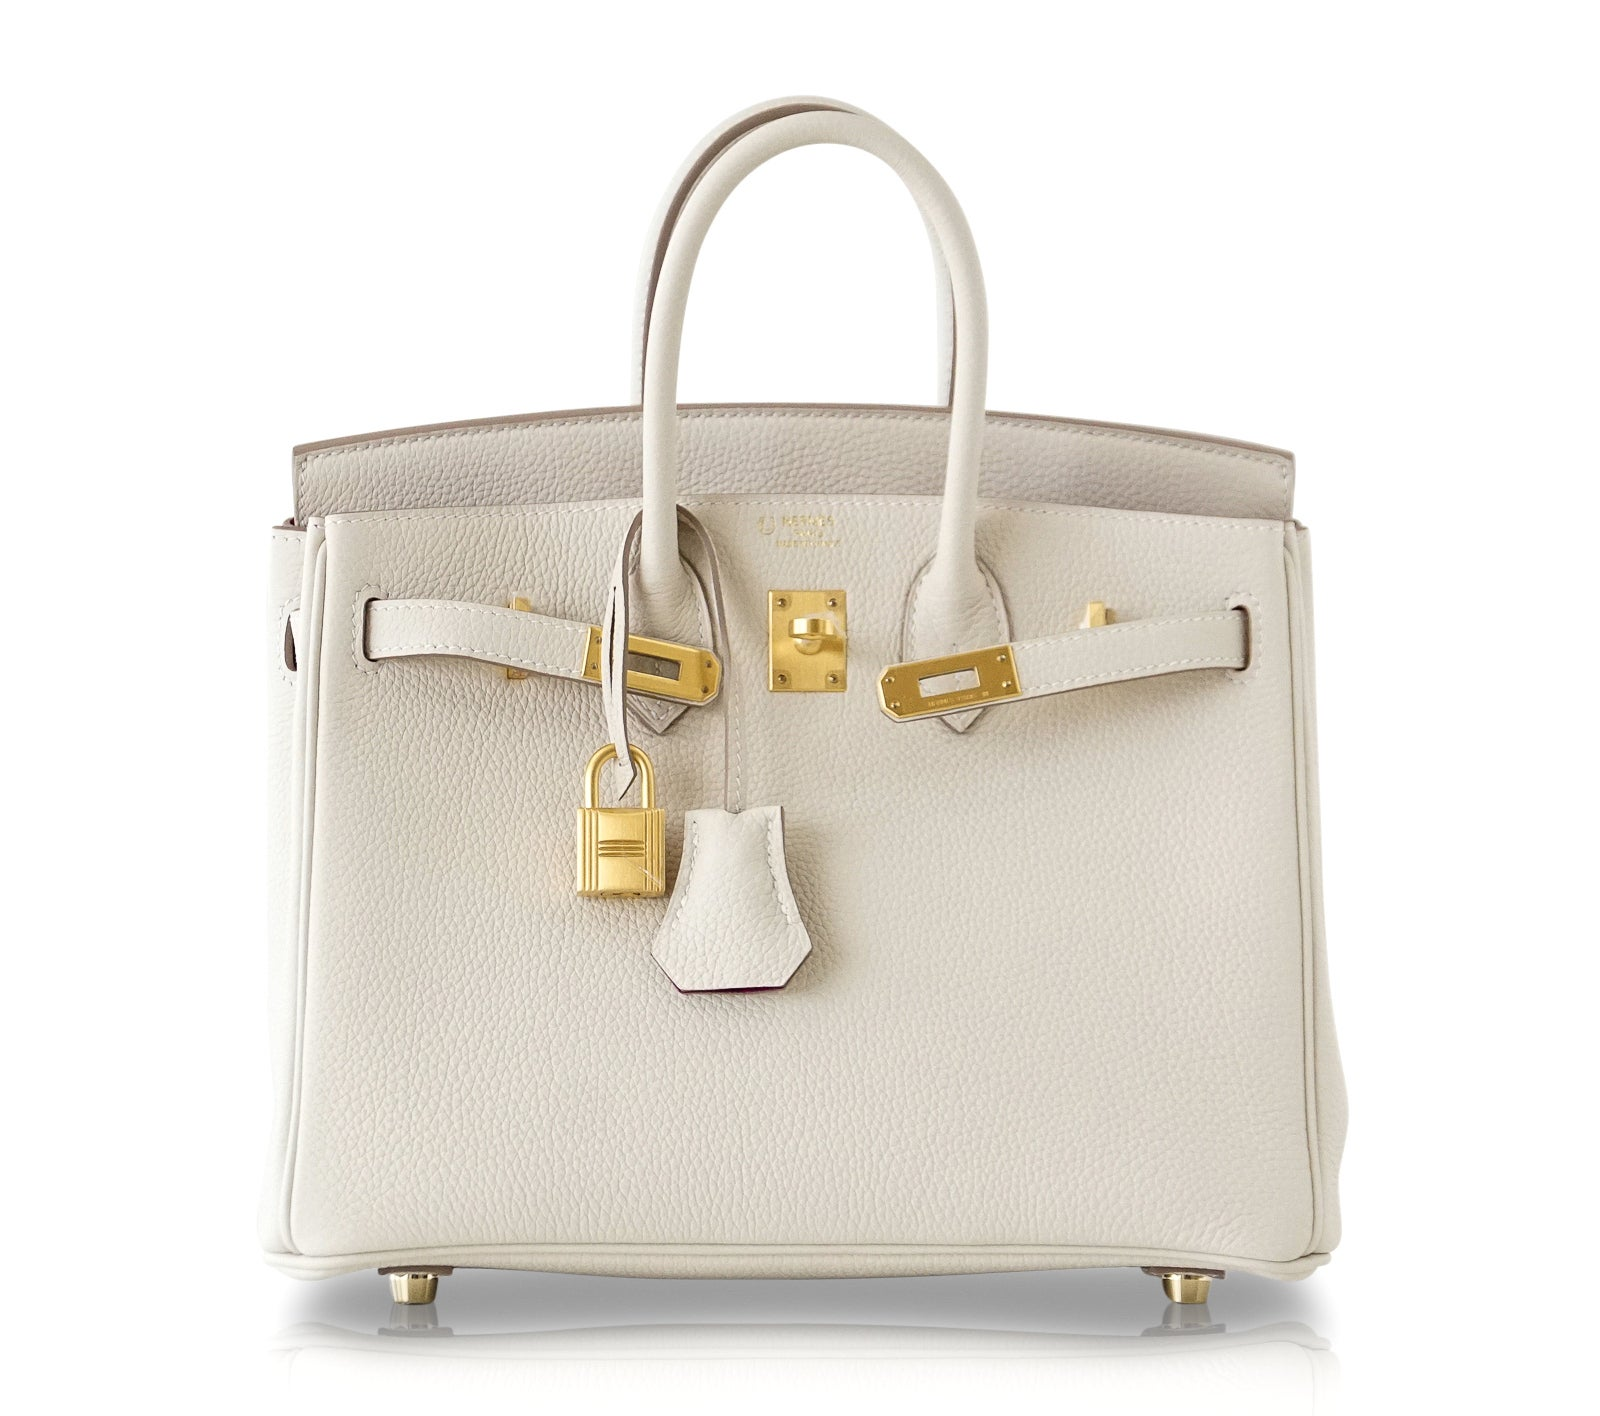 734b72cca8 Hermes Birkin 25 Bag HSS Beton Rose Poupre Pink Brushed Gold Hardware Togo  For Sale at 1stdibs